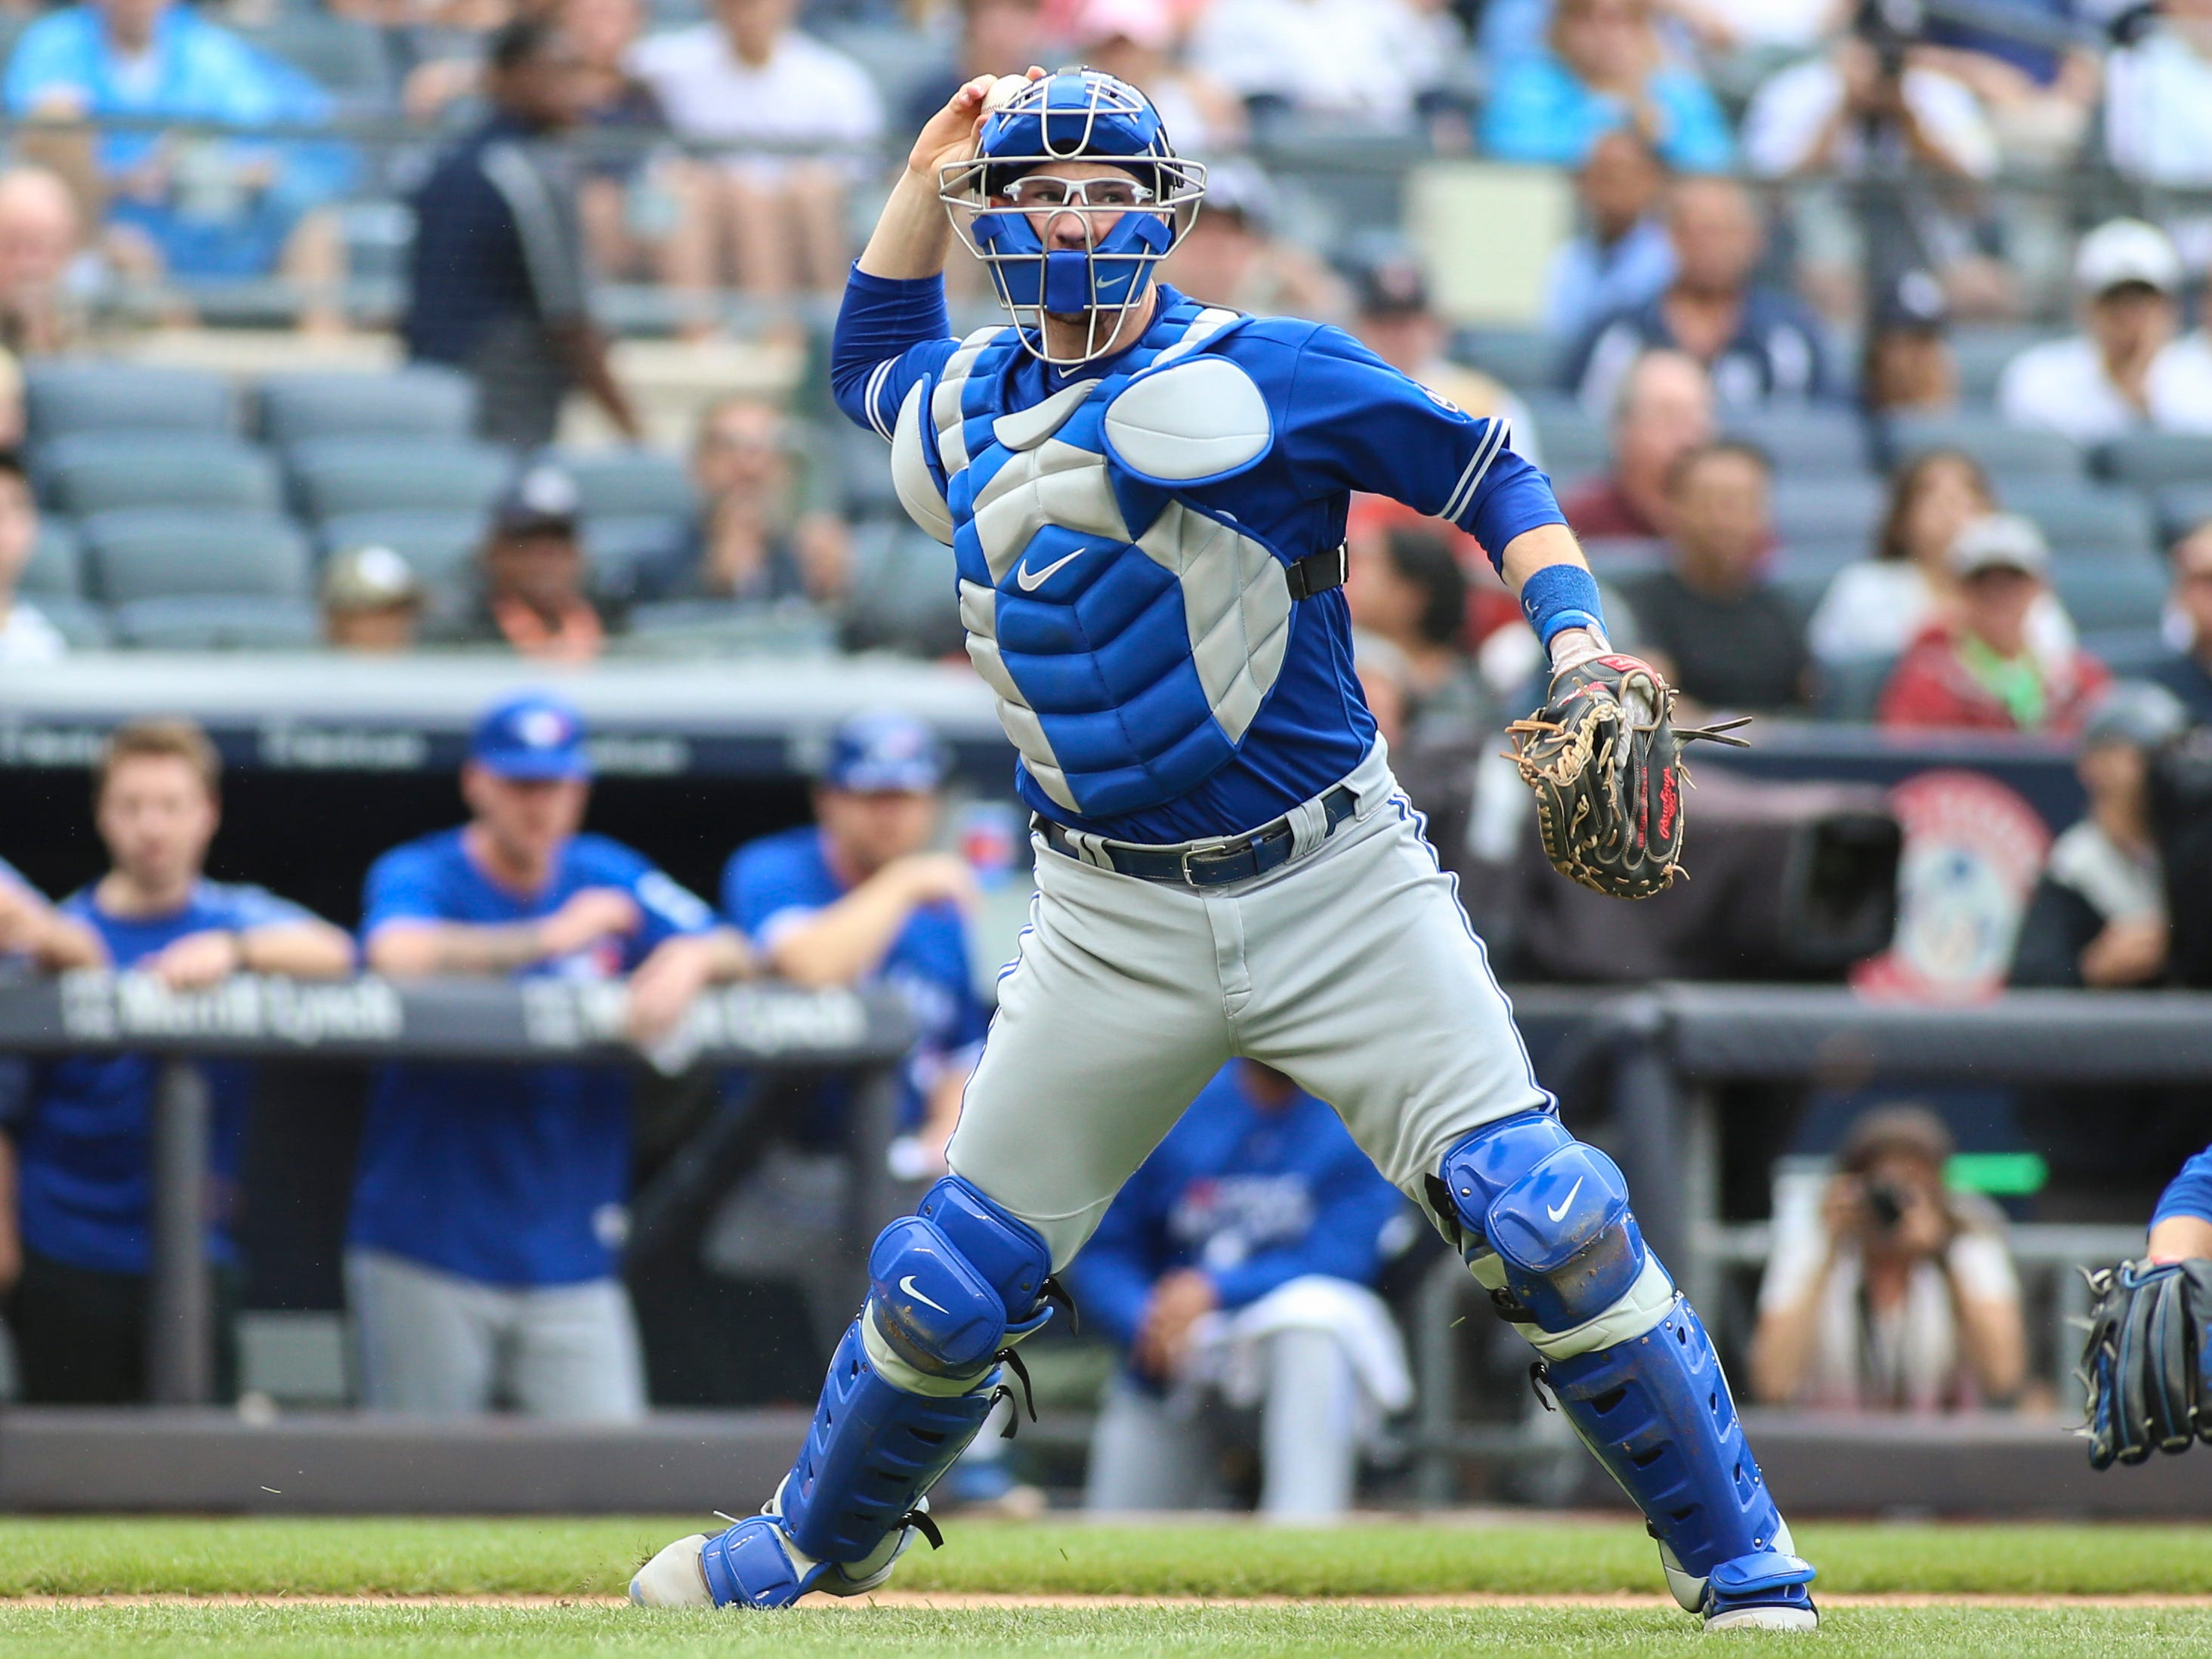 Aug 19, 2018; Bronx, NY, USA; Toronto Blue Jays catcher Danny Jansen (9) throws to first base in the first inning against the New York Yankees at Yankee Stadium. Mandatory Credit: Wendell Cruz-USA TODAY Sports